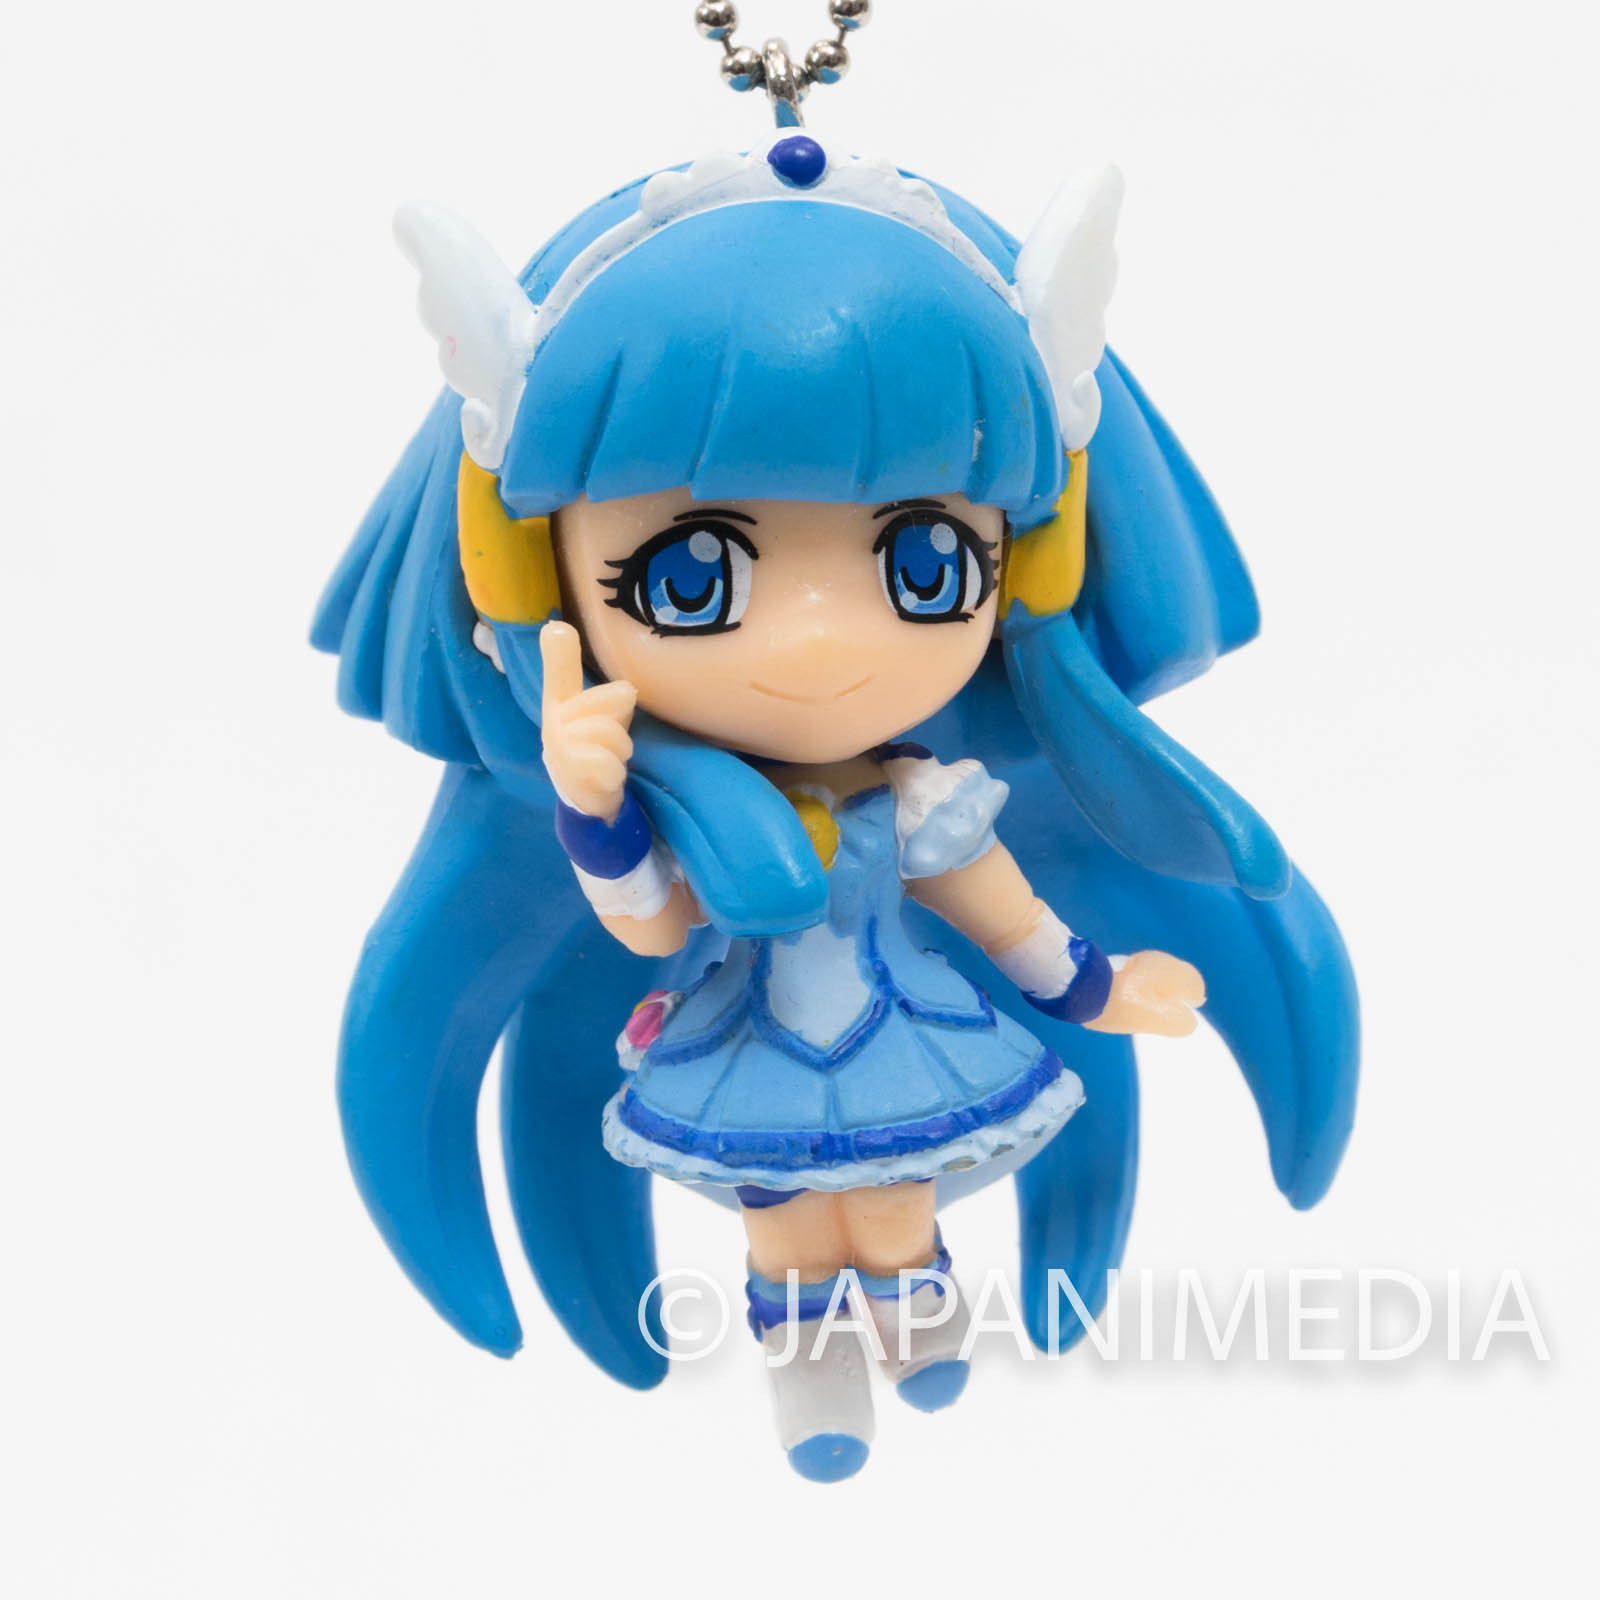 Smile PreCure! Cure Beauty PreCure Mascot Figure Ball Keychain JAPAN ANIME